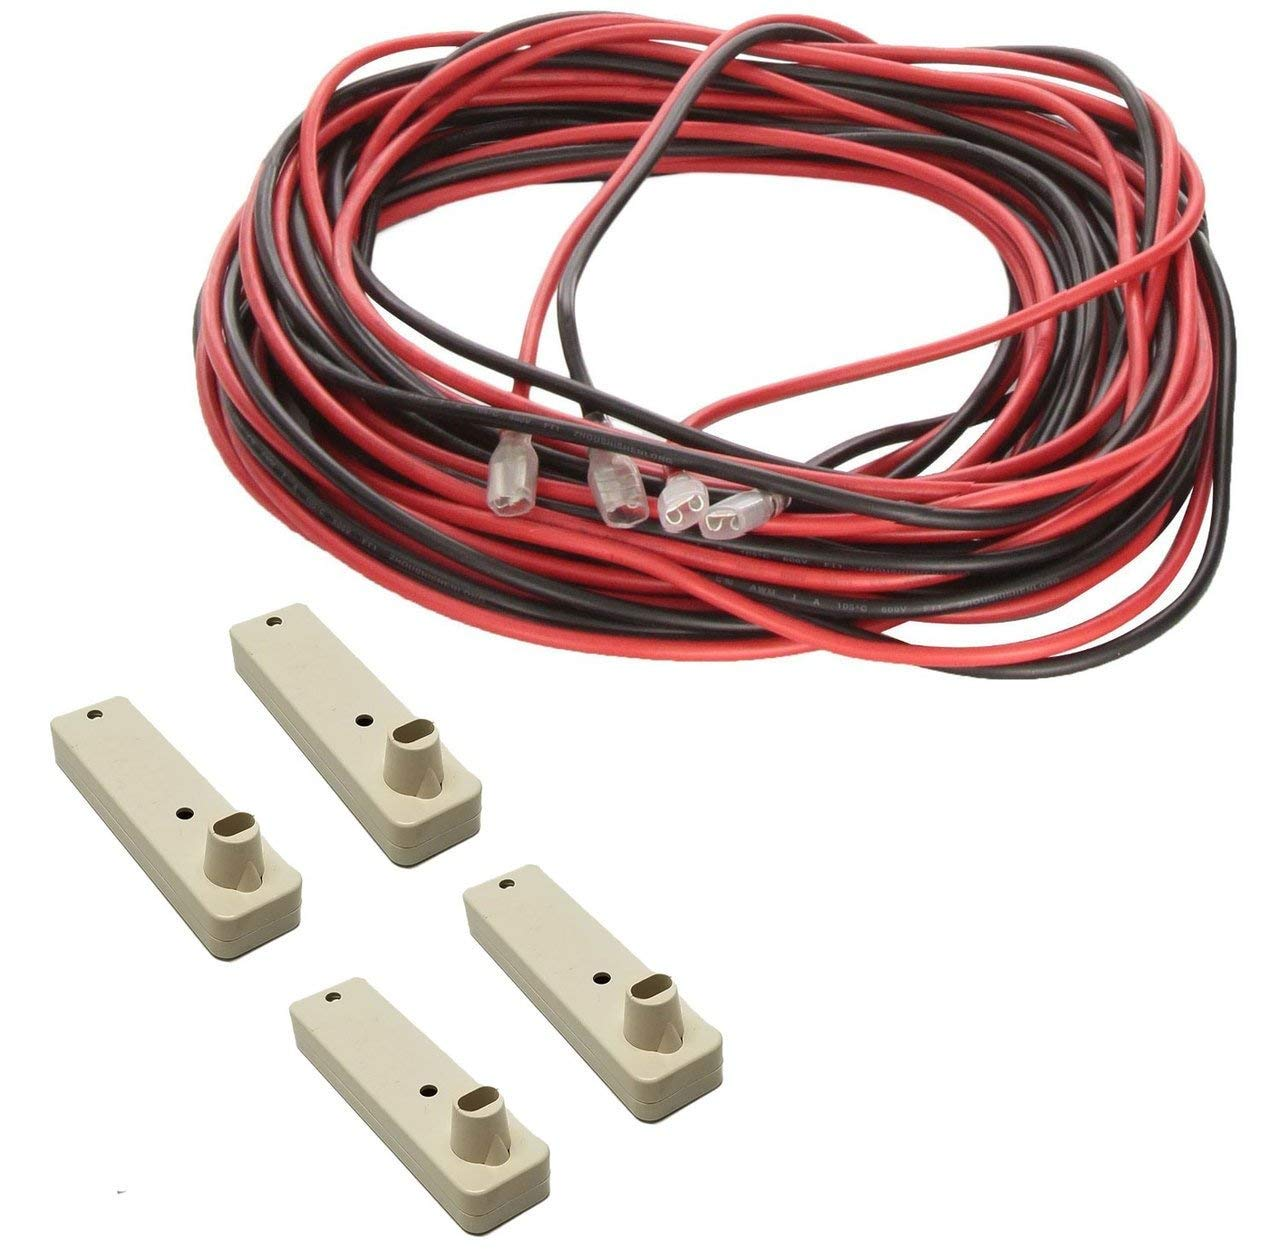 hight resolution of get quotations lippert happijac 600730 truck camper wiring kit for motor upgrade 182524